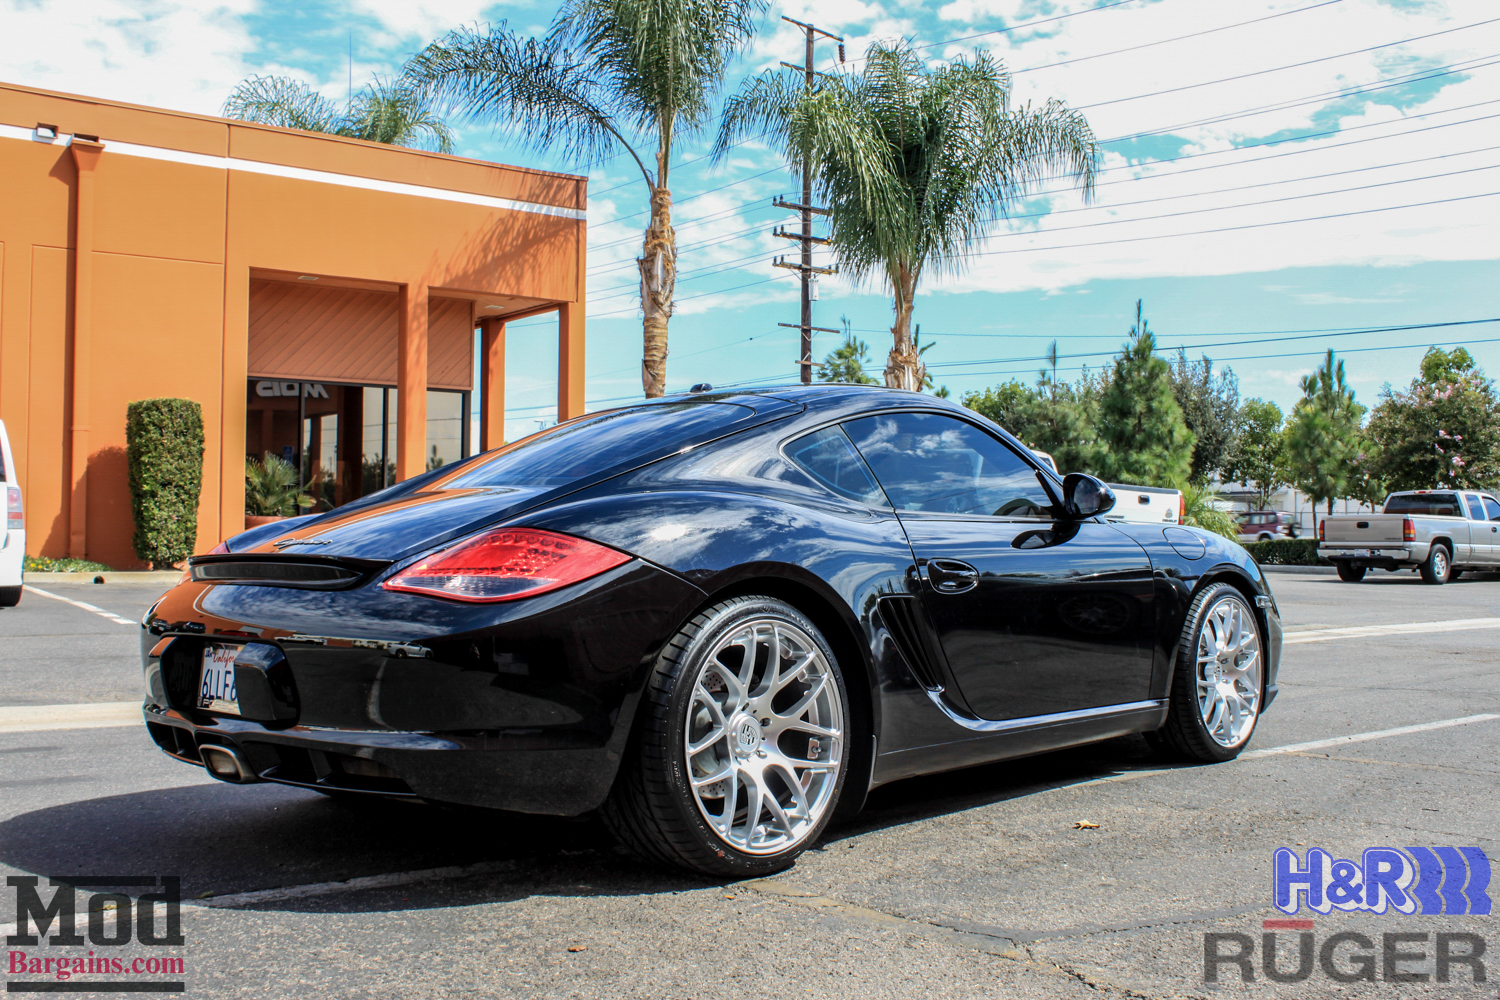 Bolt On Up To 40whp With These Mods For 987 Porsche Cayman S